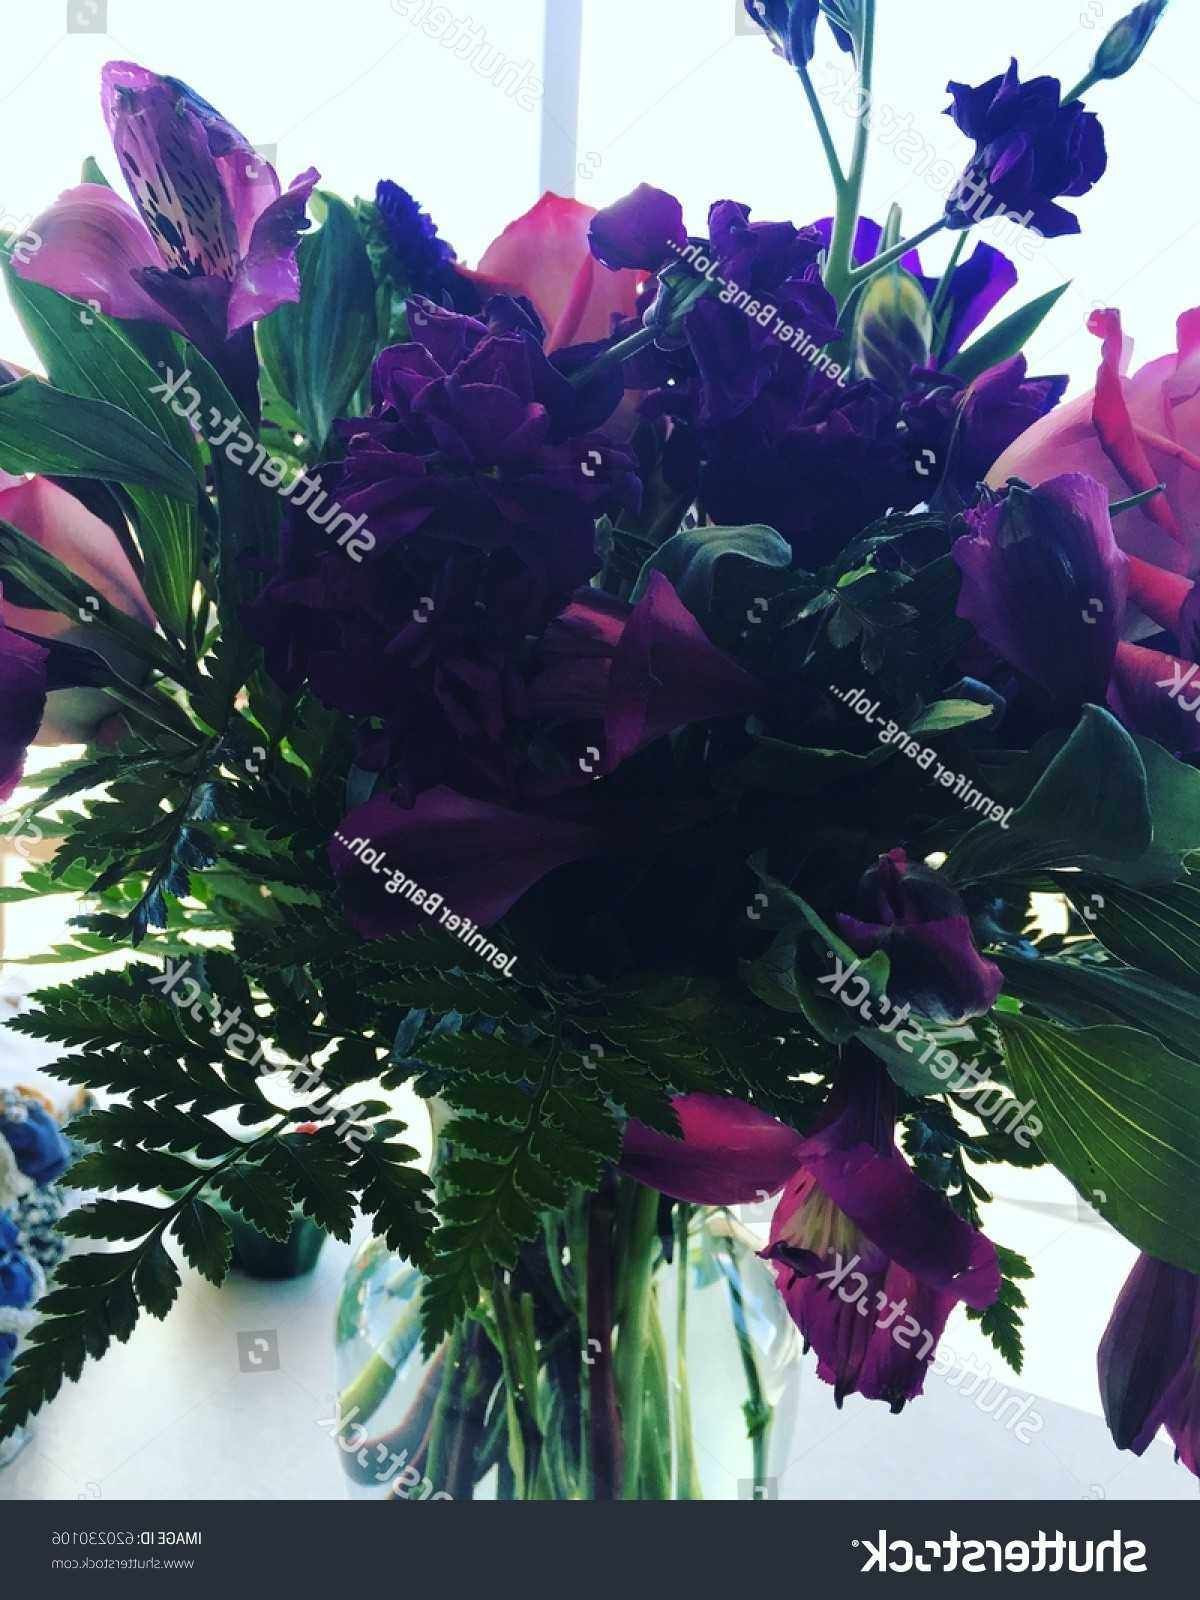 Empty Vase Florist Los Angeles Ca Of 23 Flowers In A Vase the Weekly World with Regard to 60 Fresh Flowers for Birthday Anna Wedding